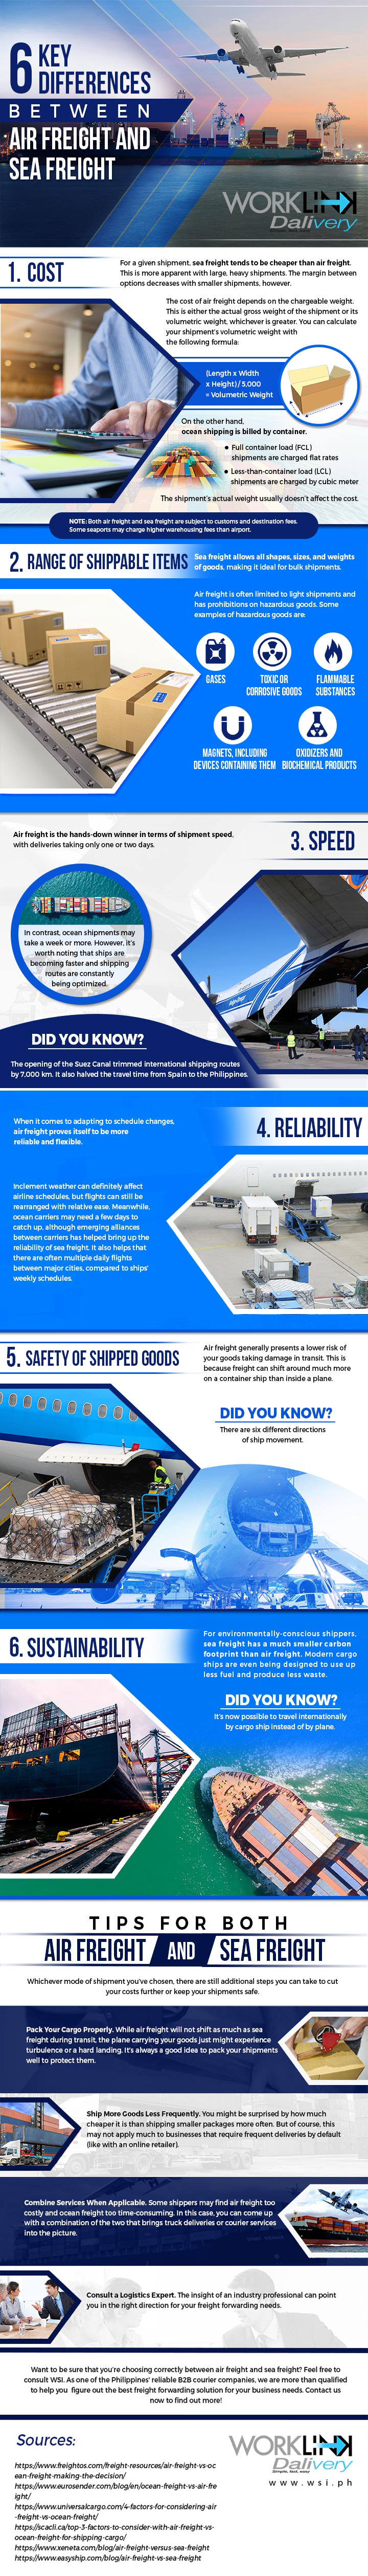 Fly or Float? The Differences Between Air Freight and Sea Freight Infographic